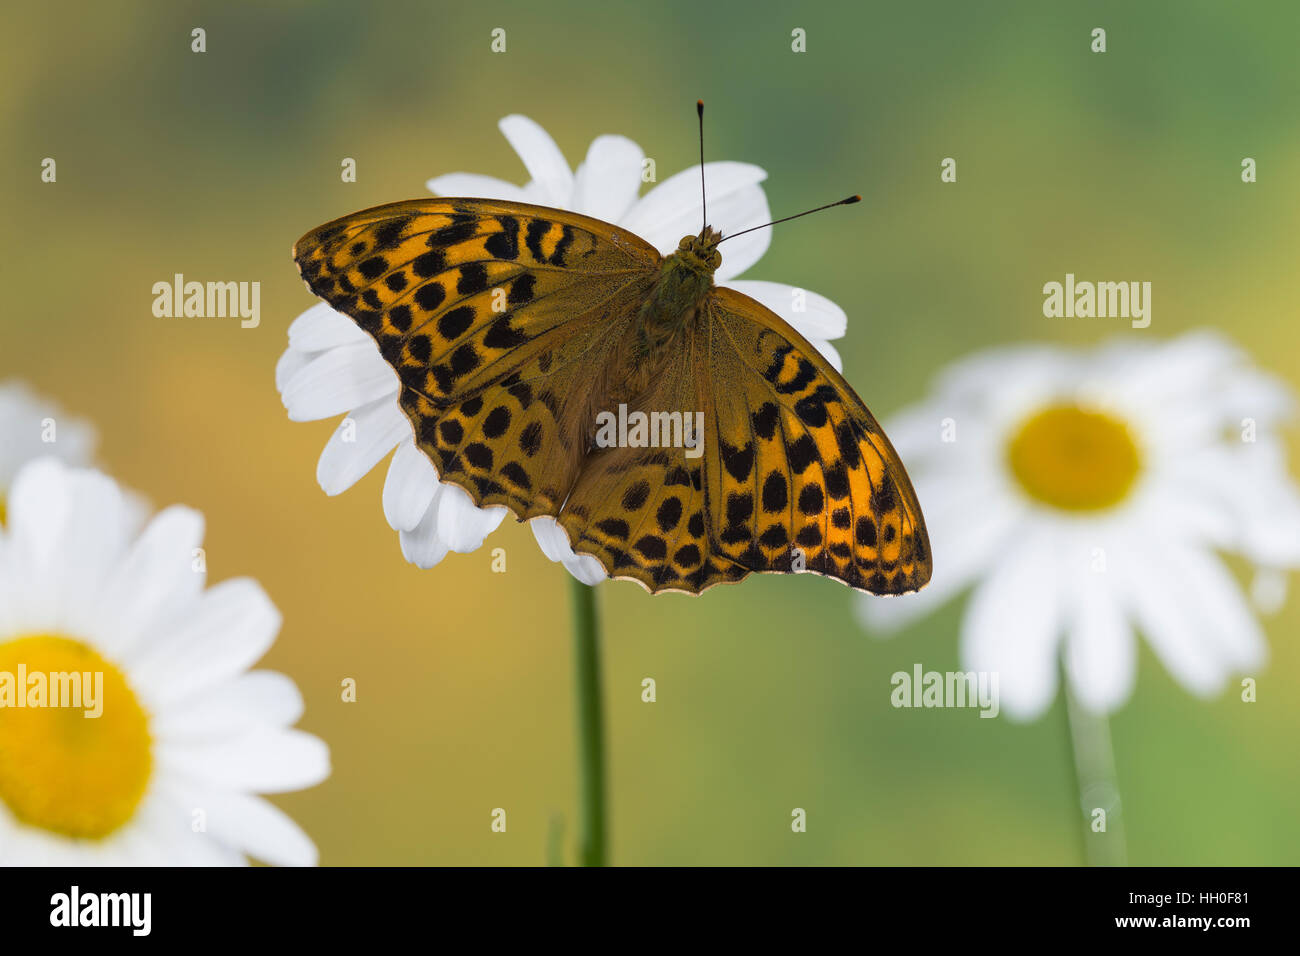 Kaisermantel, Weibchen, Silberstrich, Argynnis paphia, Silver-washed fritillary, female, Le Tabac d'Espagne, Edelfalter, Stock Photo